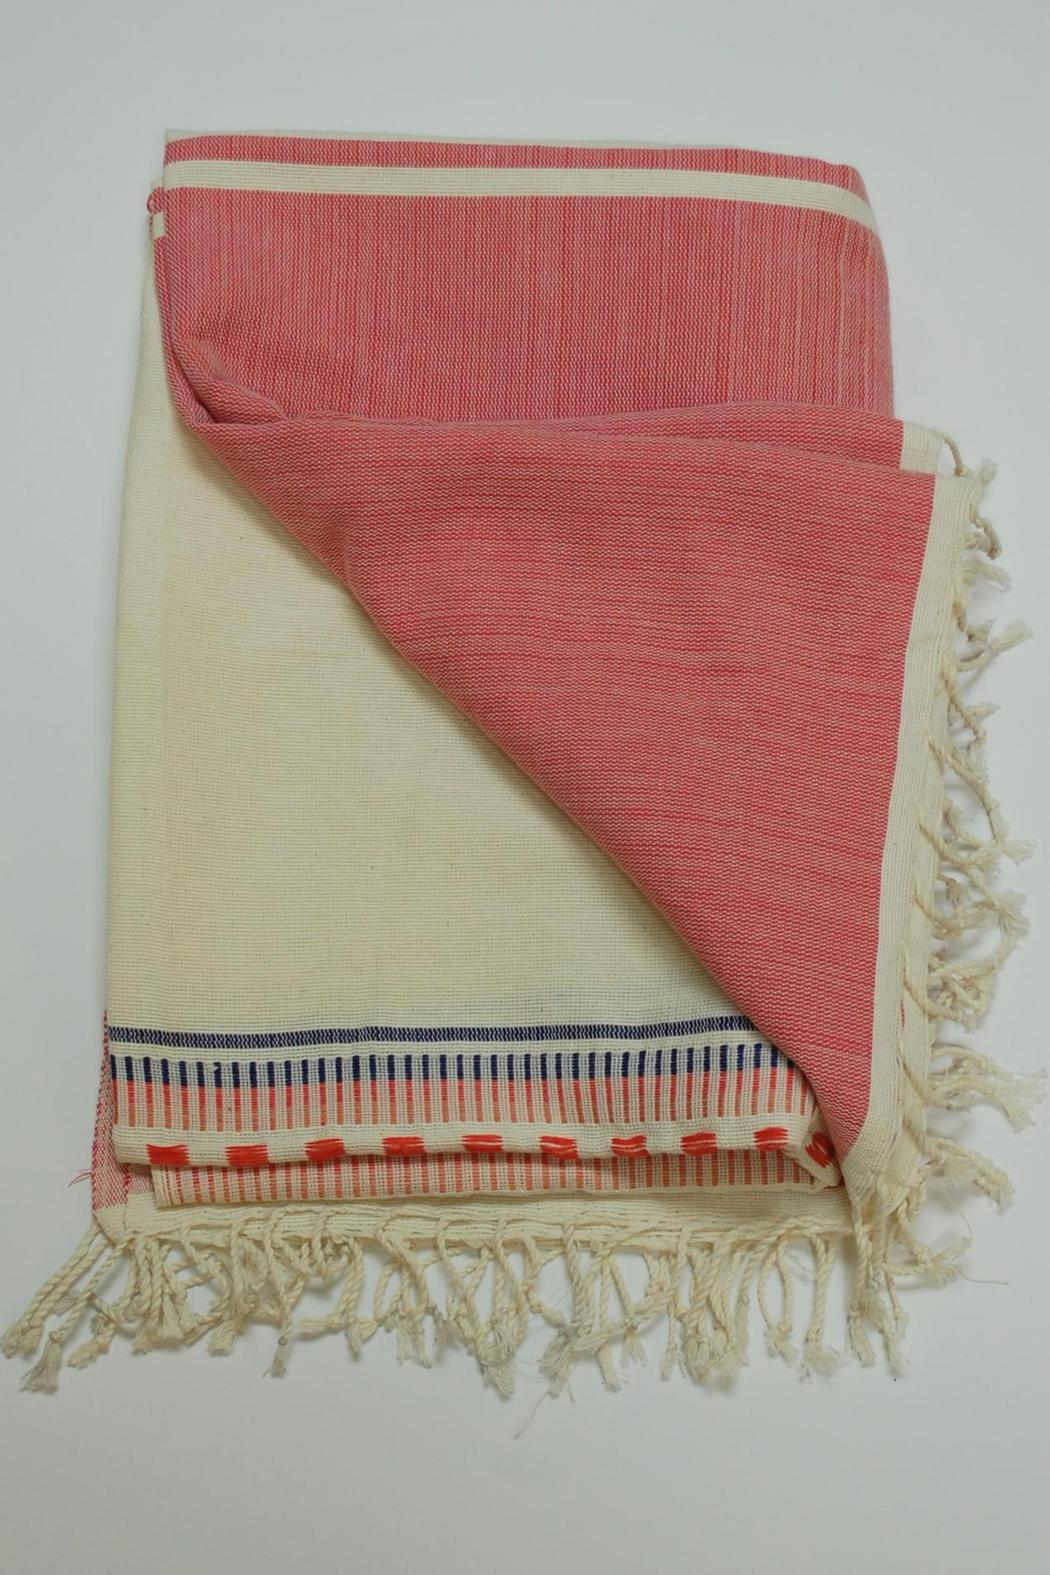 FashionAble Ethiopian Cotton Blanket from Palm Beach by Frankie